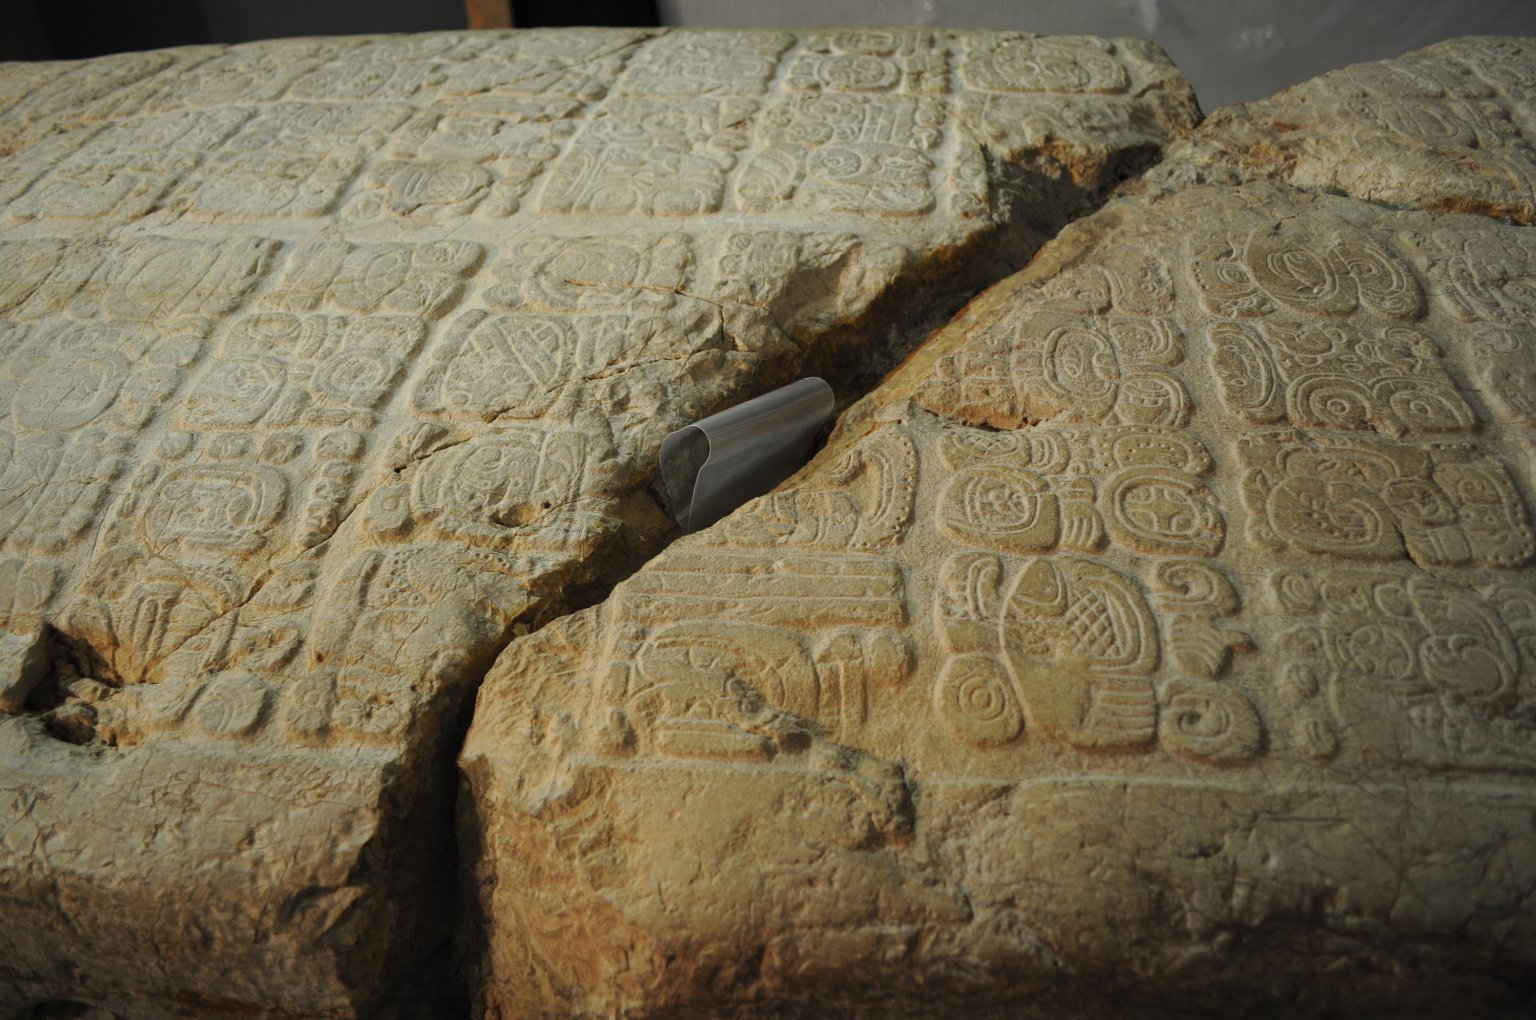 Mark Levine examines the limestone stela from Caracol, Belize, catalog # A1038.1